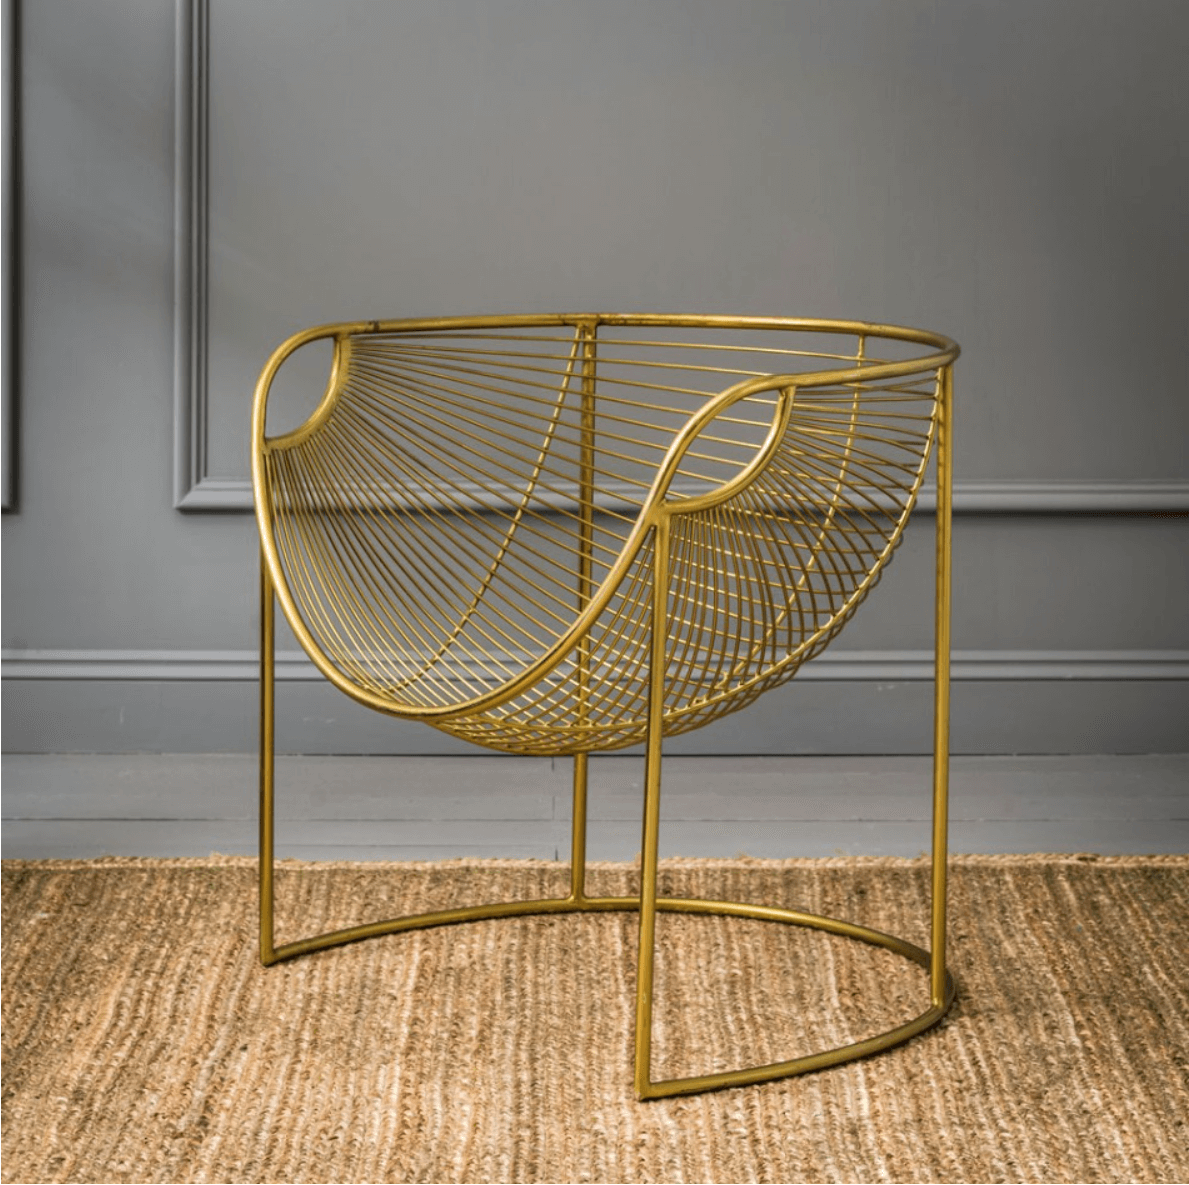 Mulberry Leaf Lounger in Gold, Graham & Green